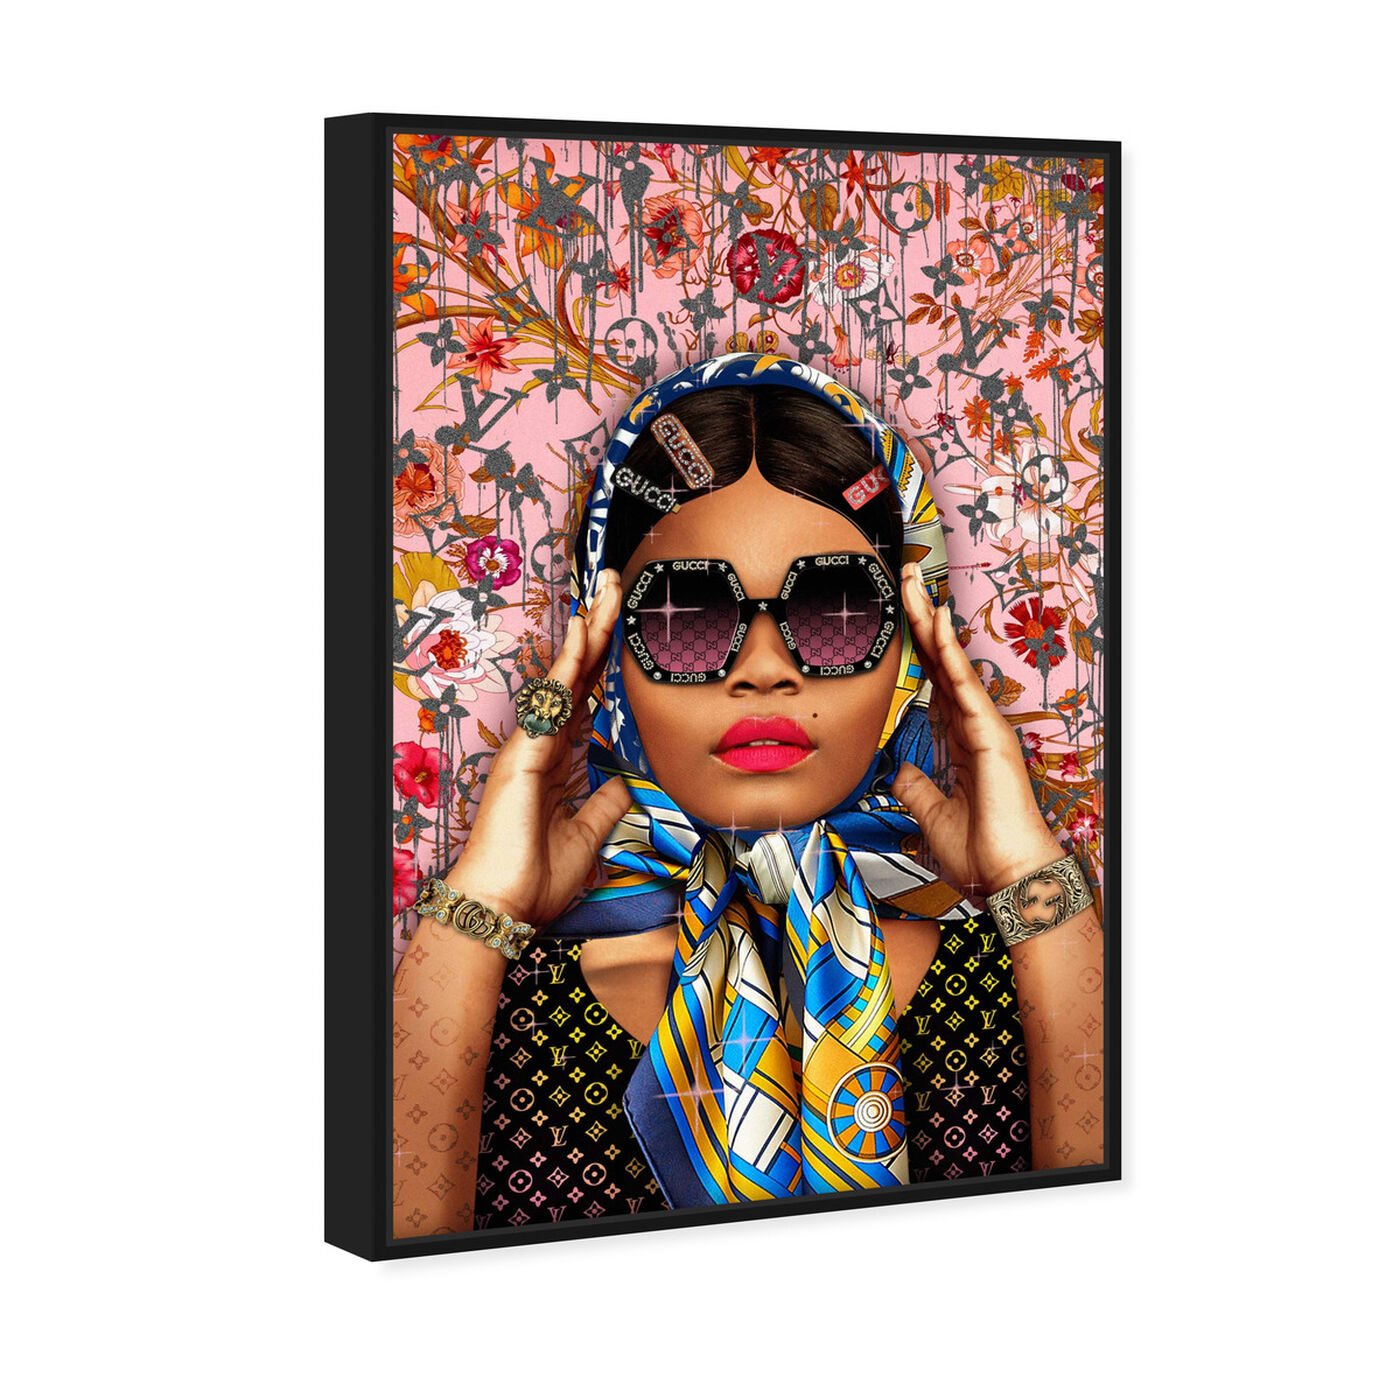 Angled view of Snap a picture featuring fashion and glam and portraits art.